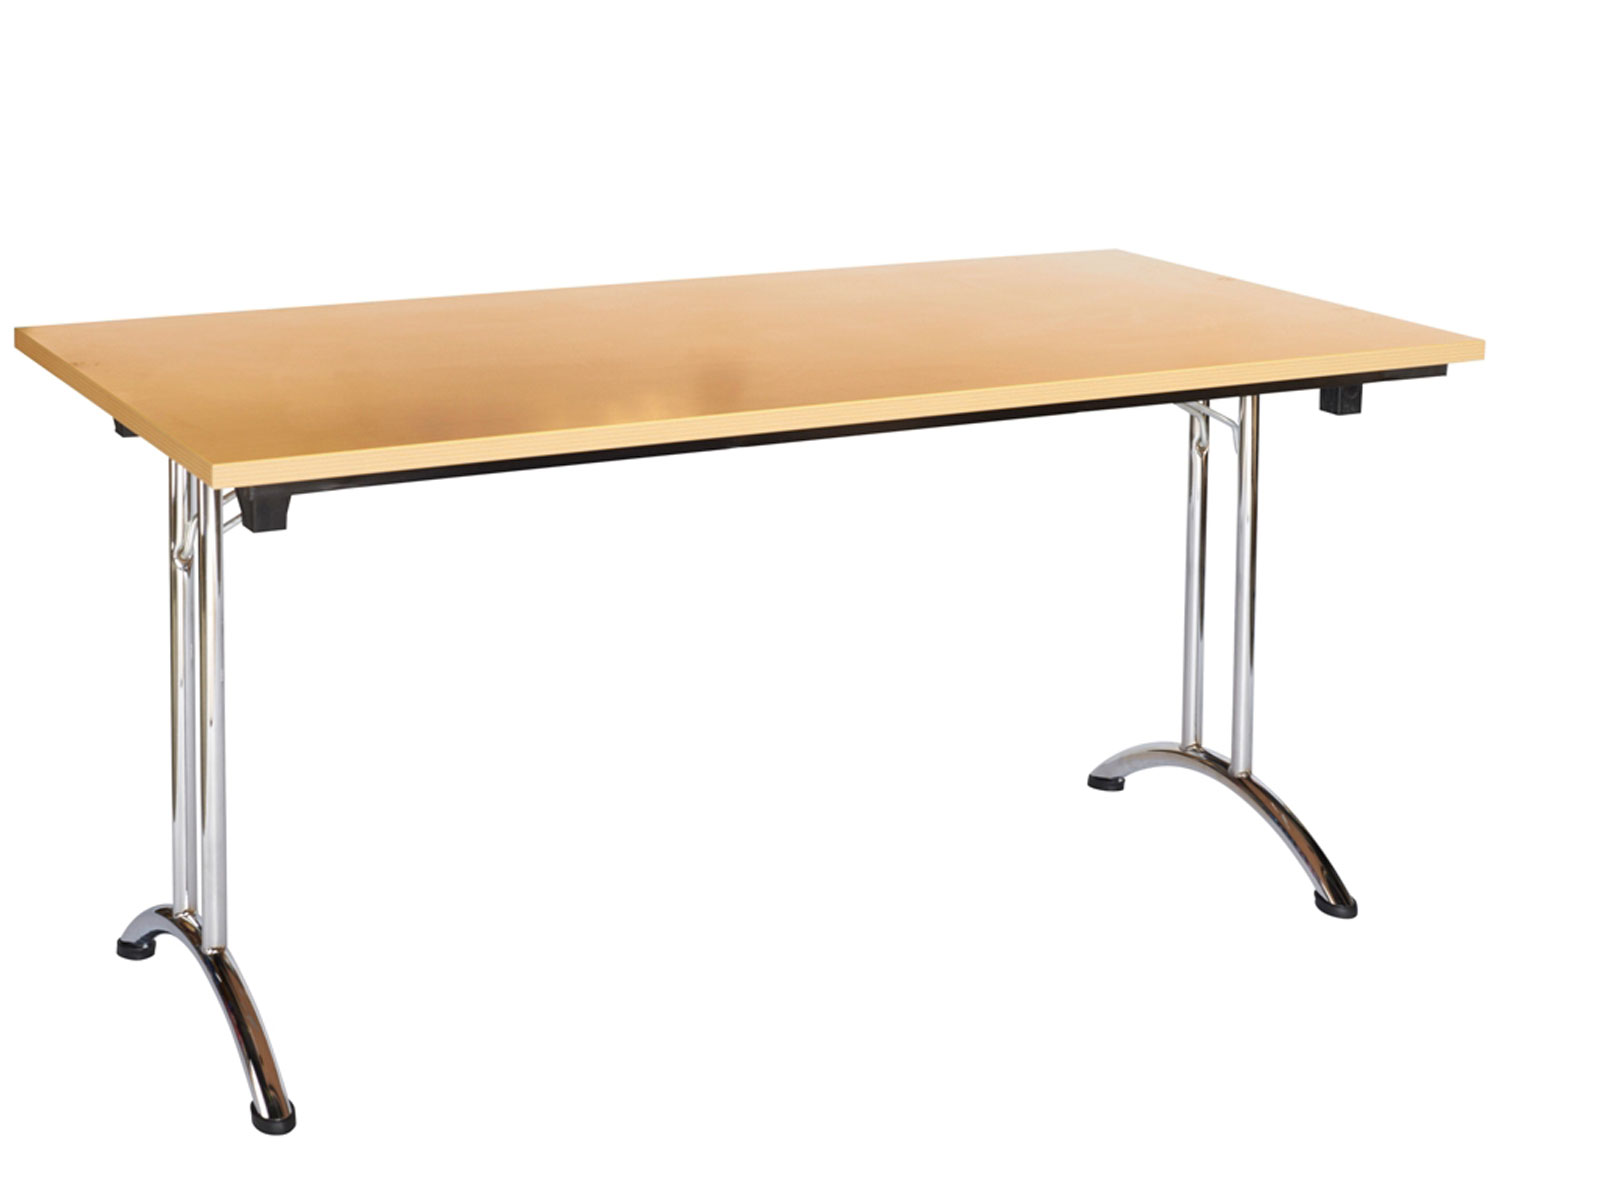 D coration table pliante 23 besancon table pliante - Table pliante leroy merlin ...